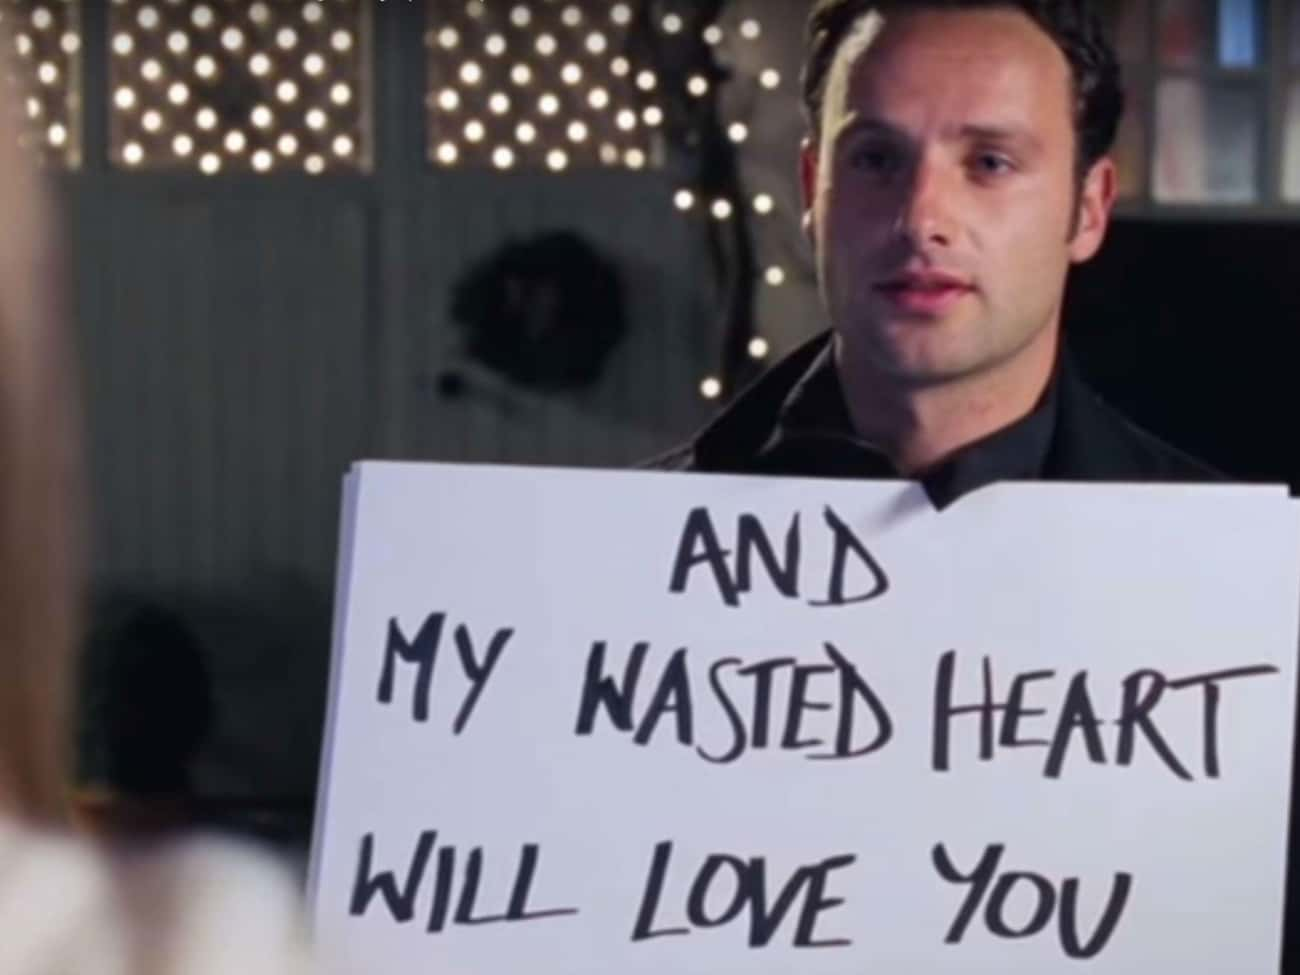 In Love Actually, Mark Provides A Step-By-Step Guide For Turning A Woman Into An Object